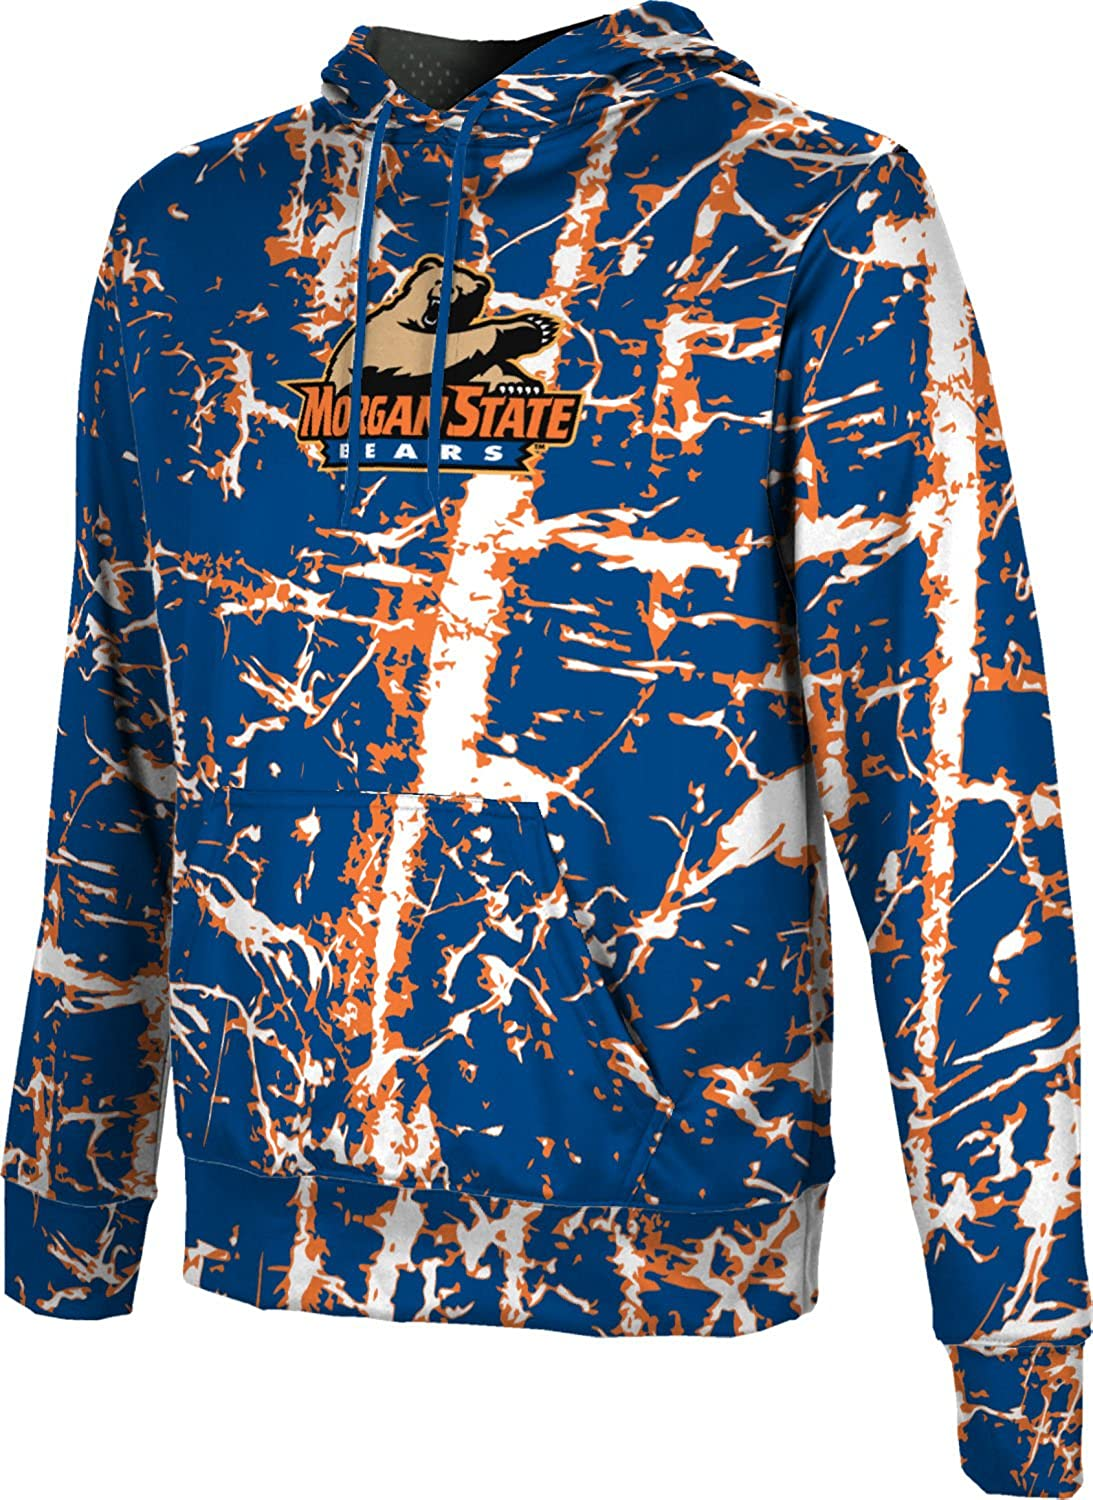 ProSphere Morgan State University Boys Hoodie Sweatshirt Distressed